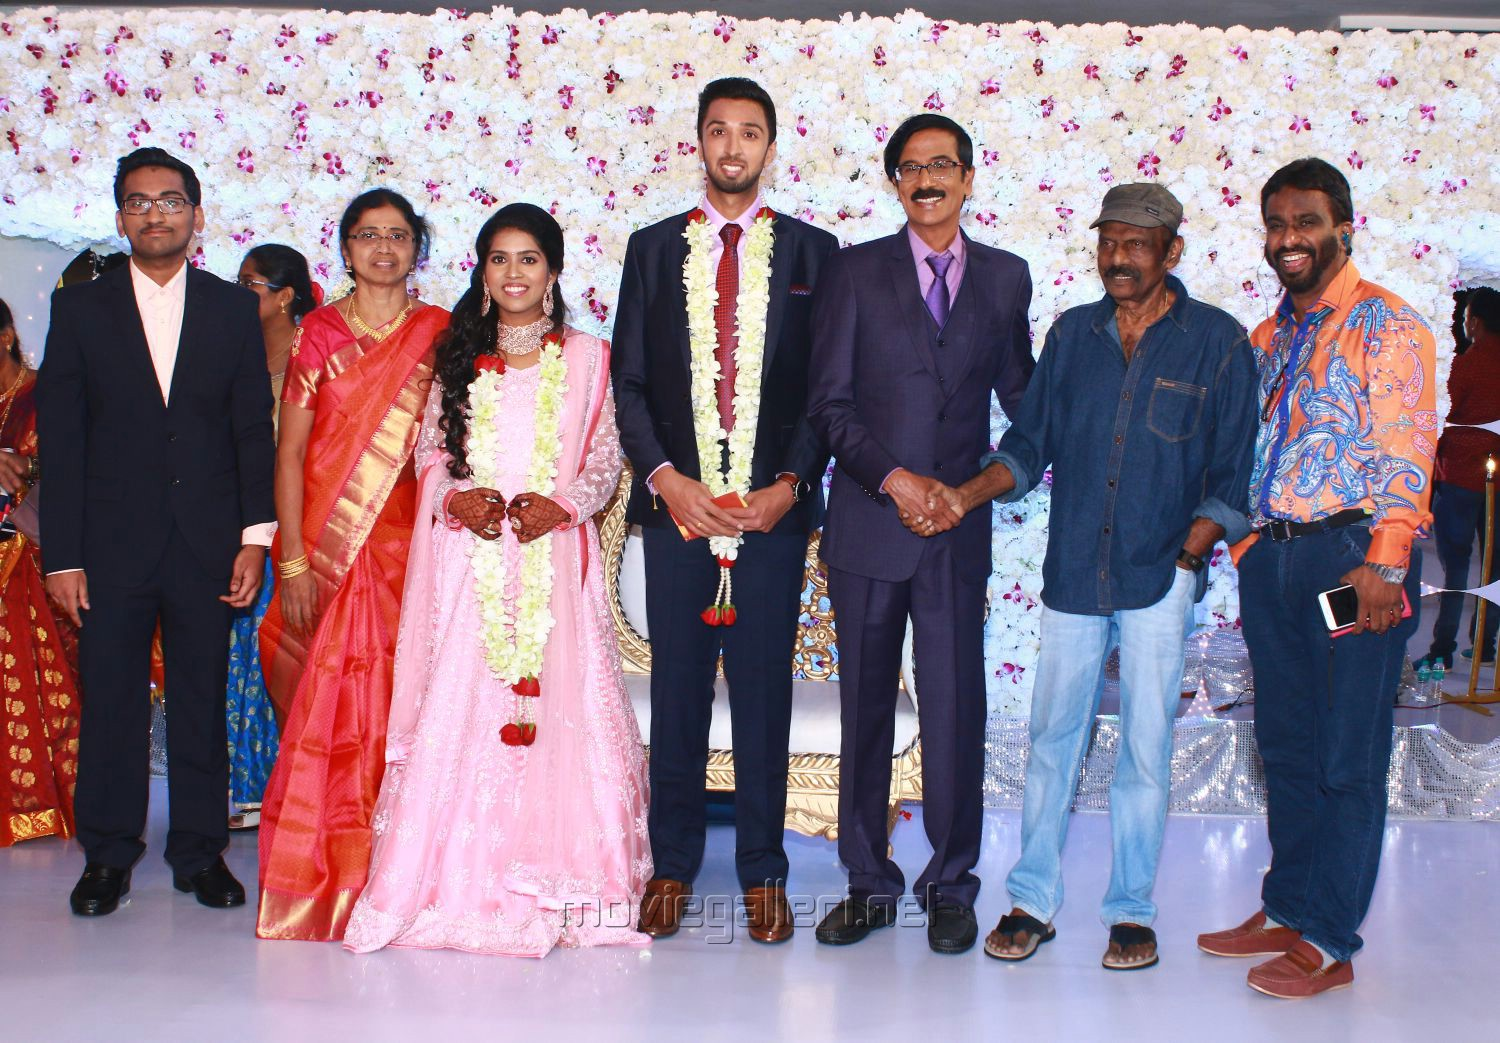 Comedy King Goundamani @ Manobala Son Harish Priya Wedding Reception Stills